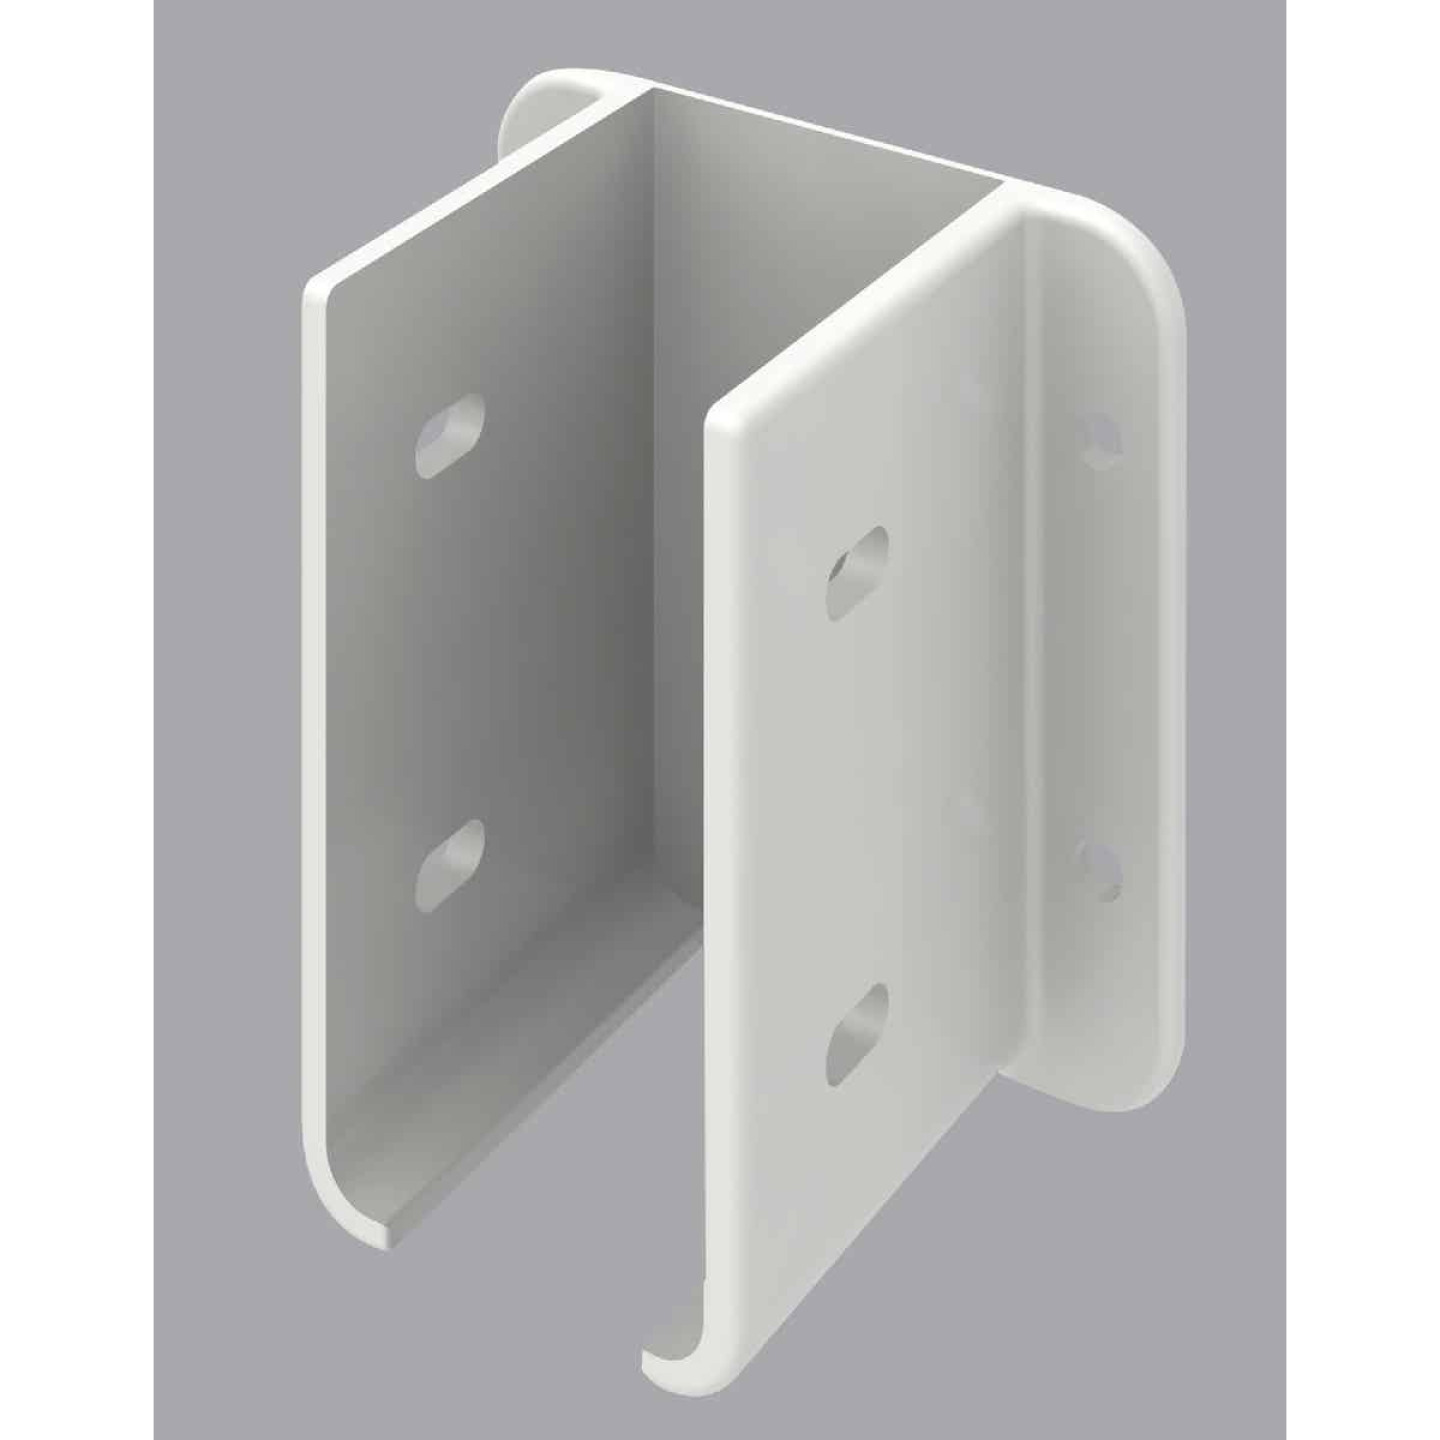 Outdoor Essentials 1-1/2 In. x 3 In. White Vinyl Fence Panel Mounting Kit (2-Pack) Image 1